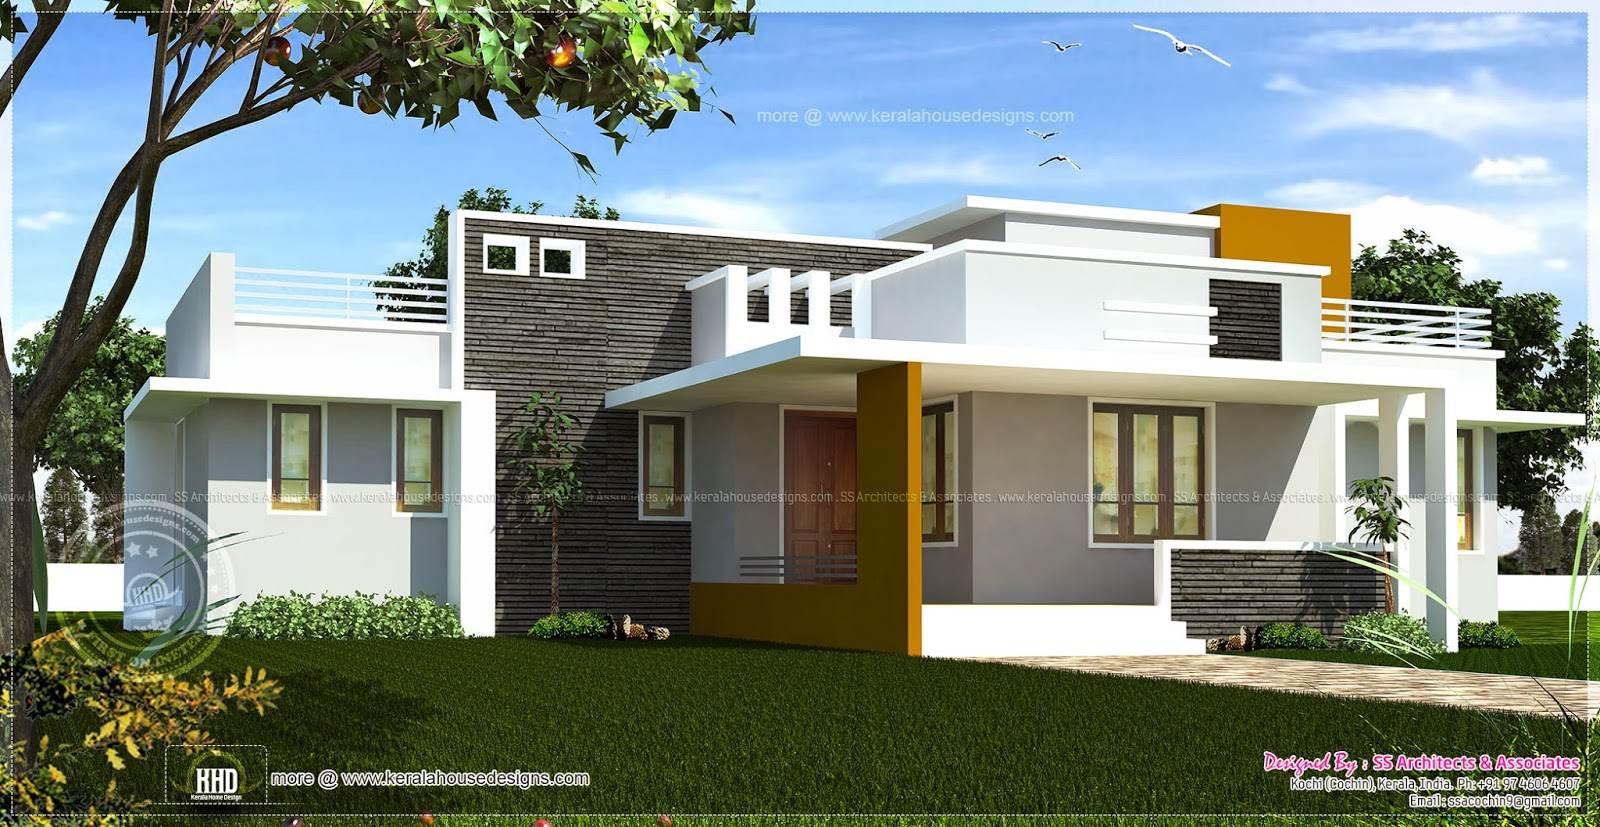 Single floor contemporary house design kerala home for Single floor house